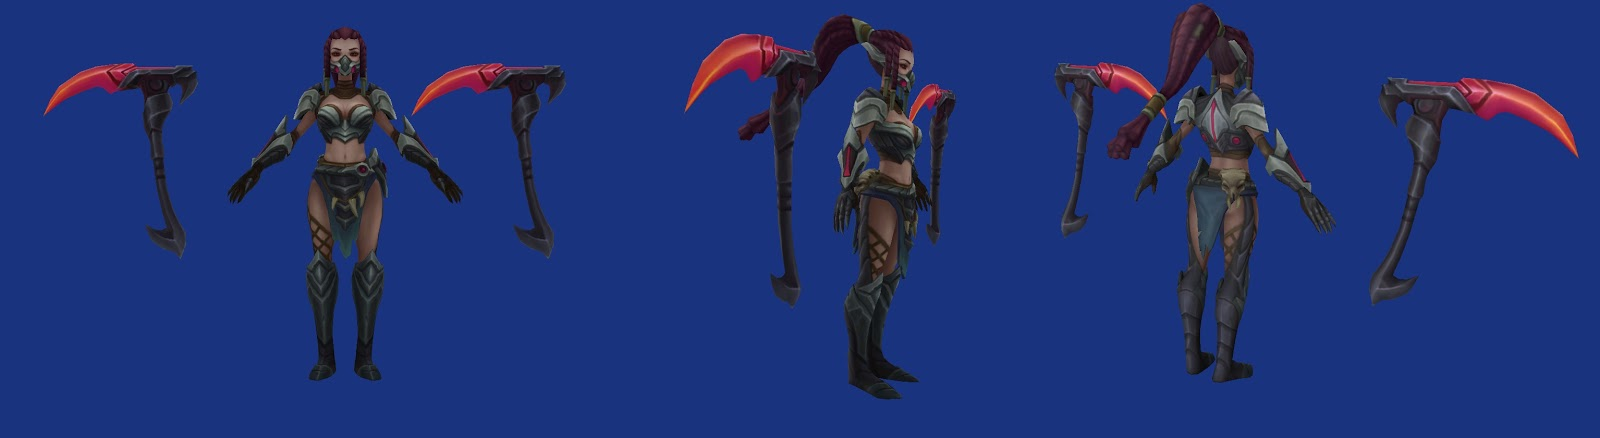 Material for the back of Headhunter Akali armor? - Cosplay - how to find a head hunter